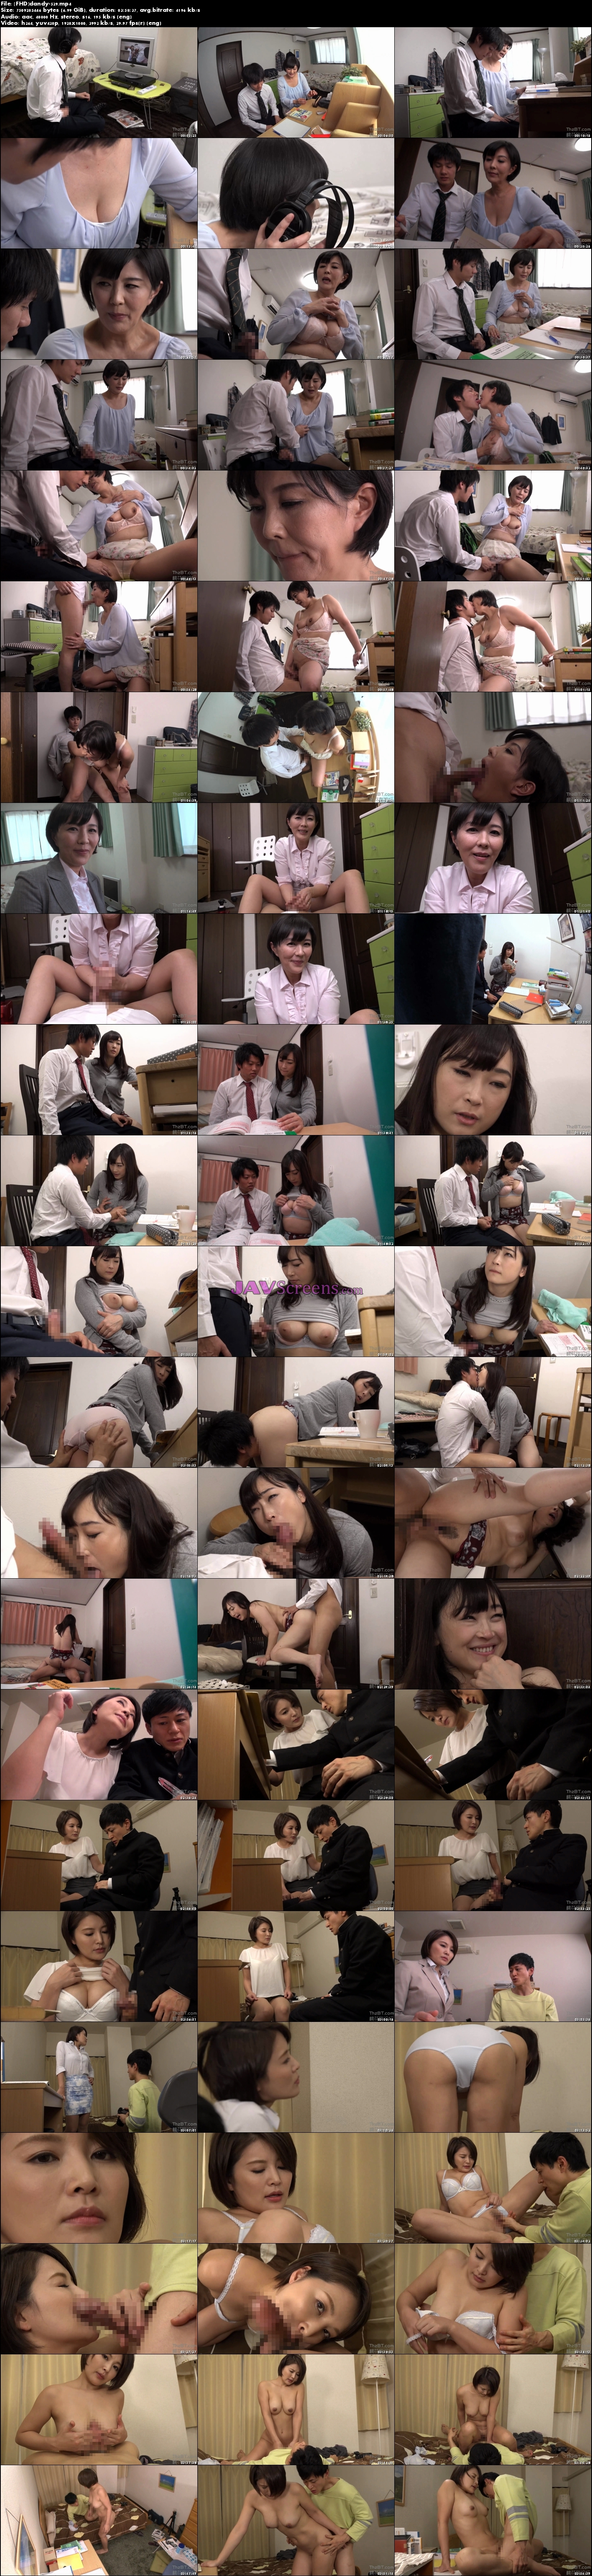 DANDY-529.jpg - JAV Screenshot